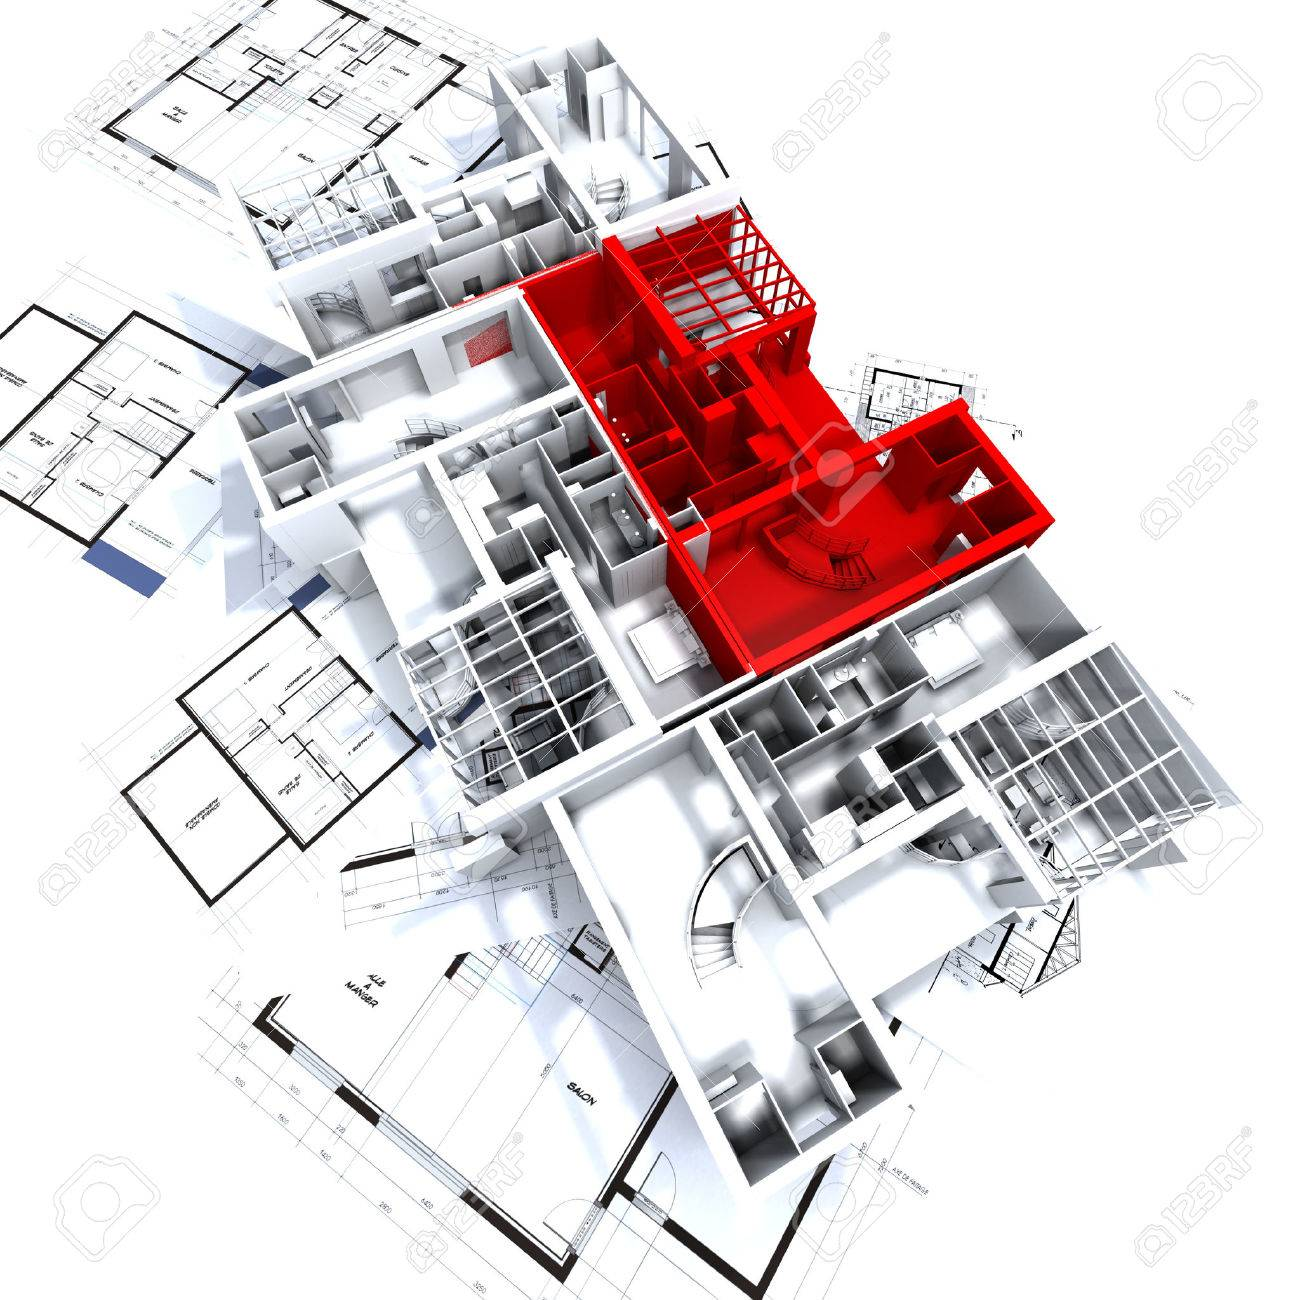 Apartment highlighted in red on a white architecture mockup on top of architect's plans Stock Photo - 1650026